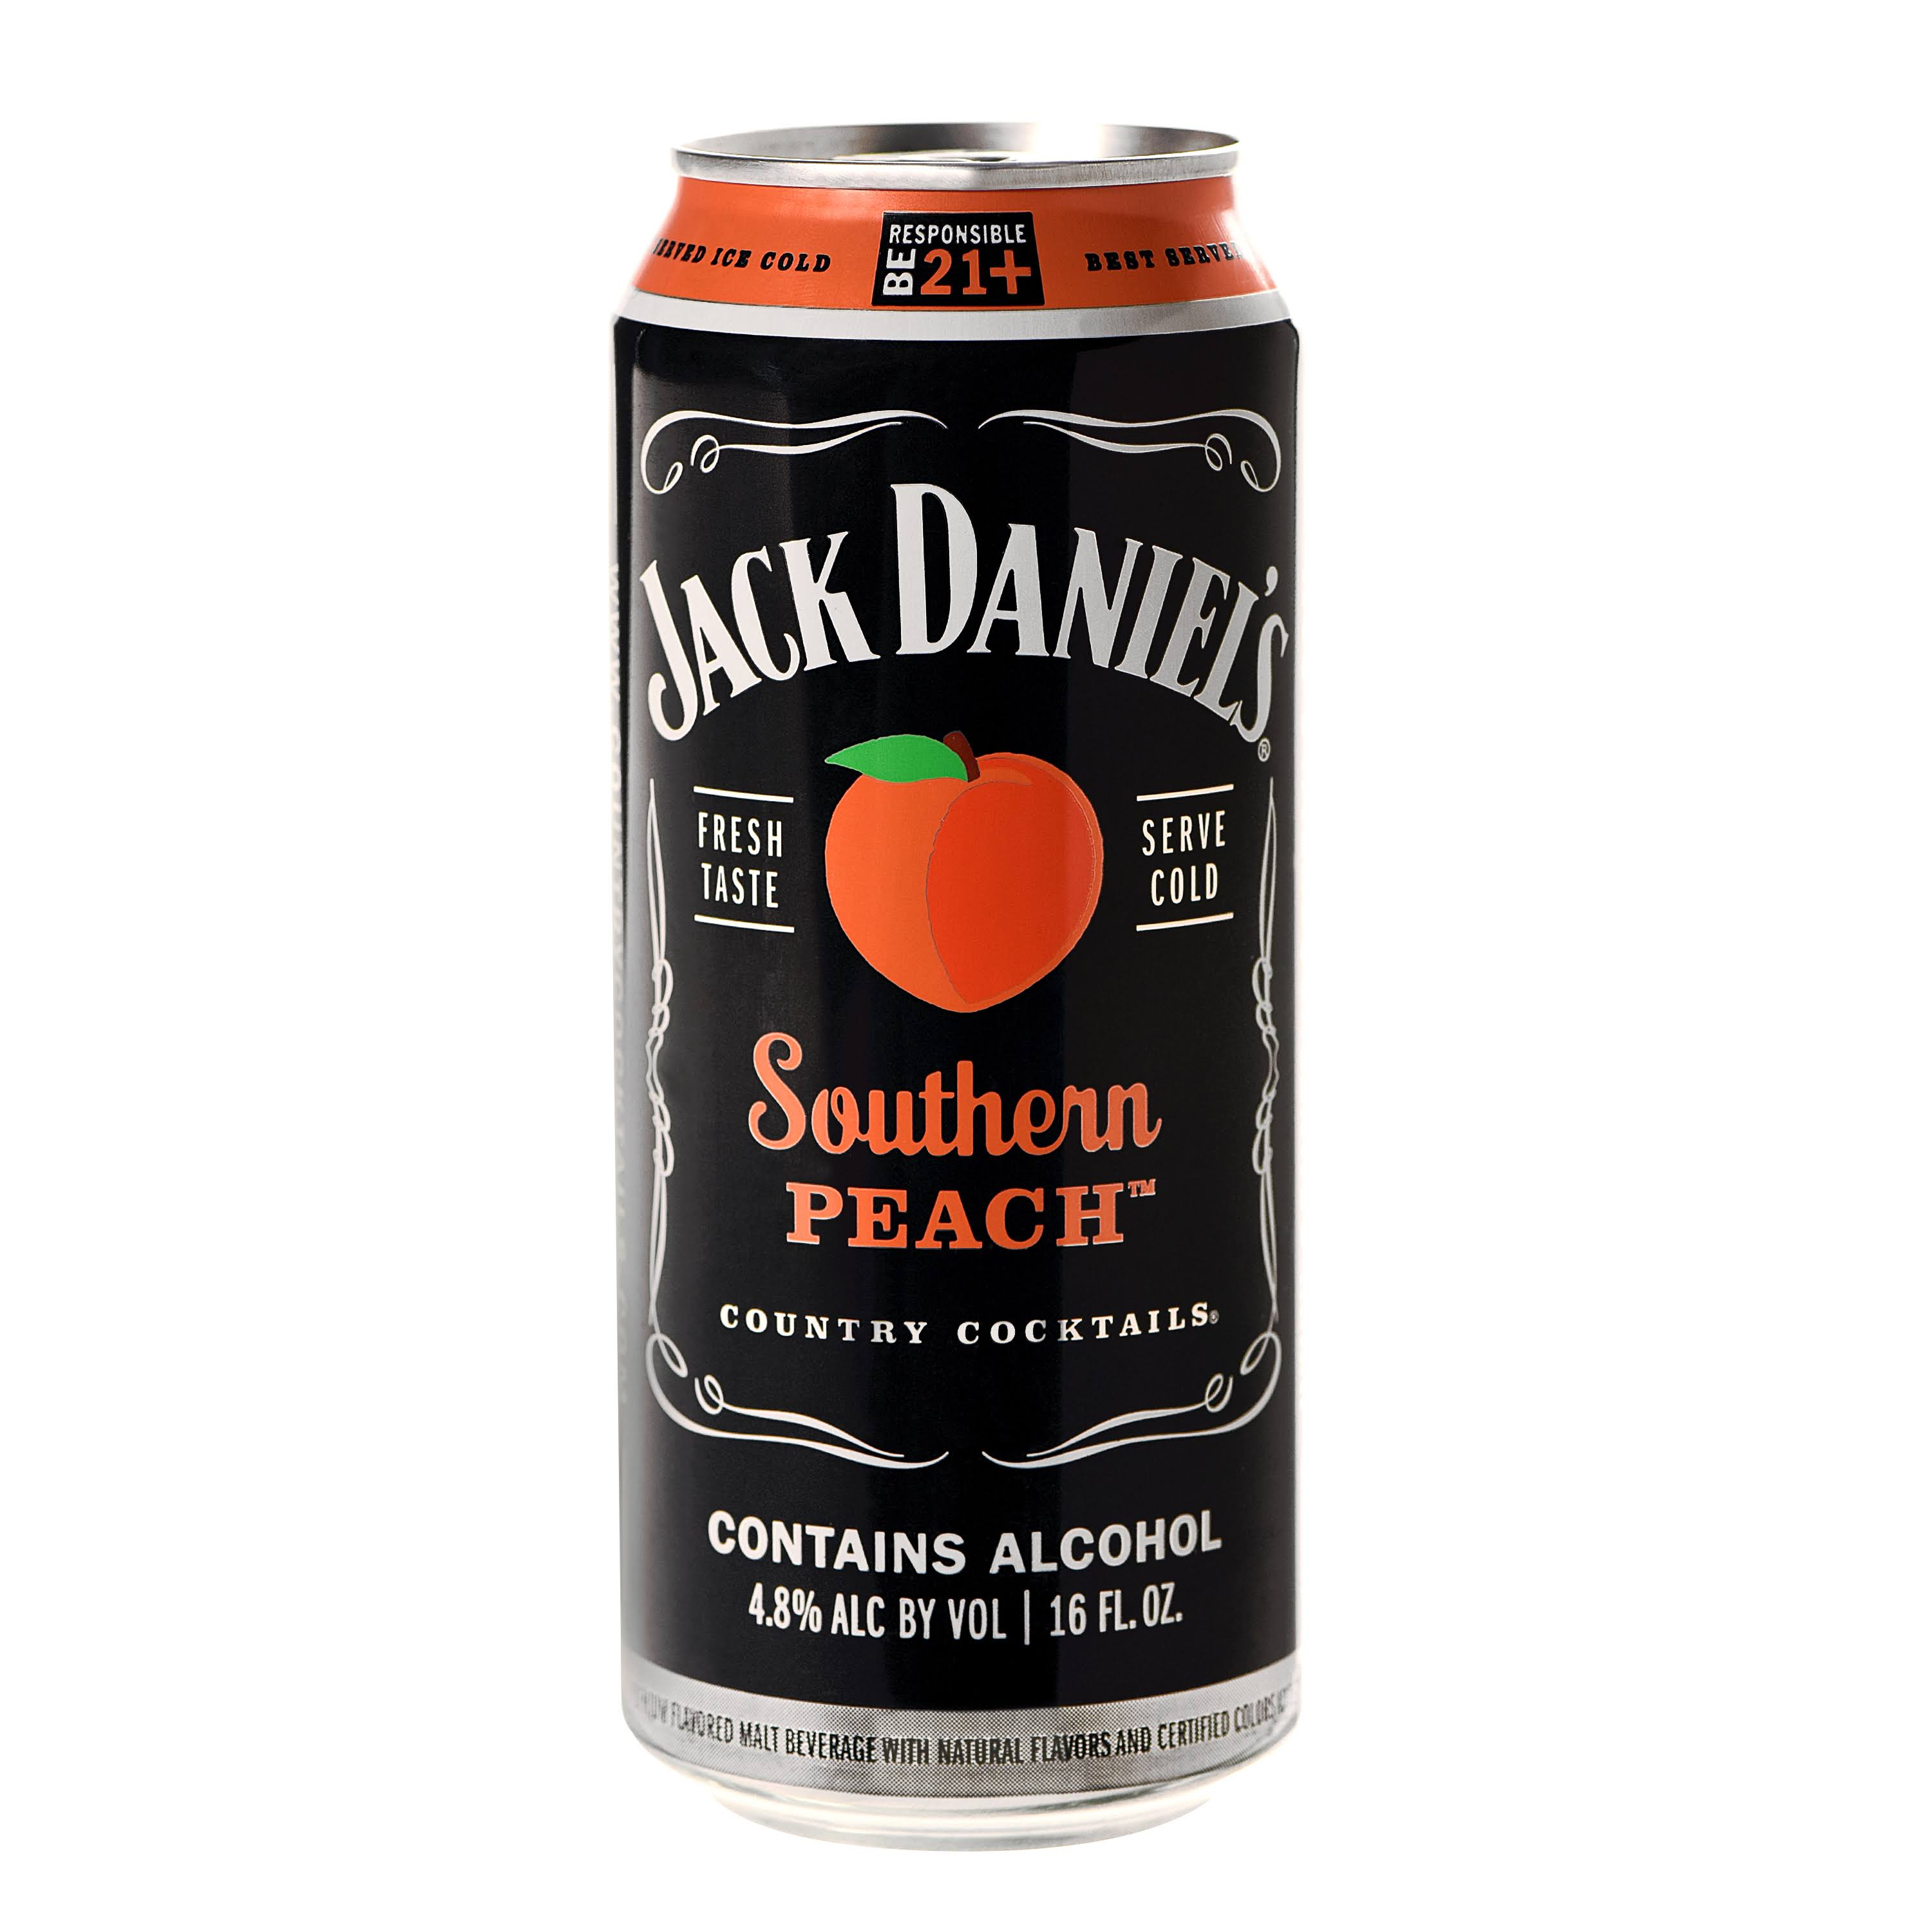 Jack Daniels Country Cocktails Southern Peach Beer, Flavored Malt Beverage - 16 oz